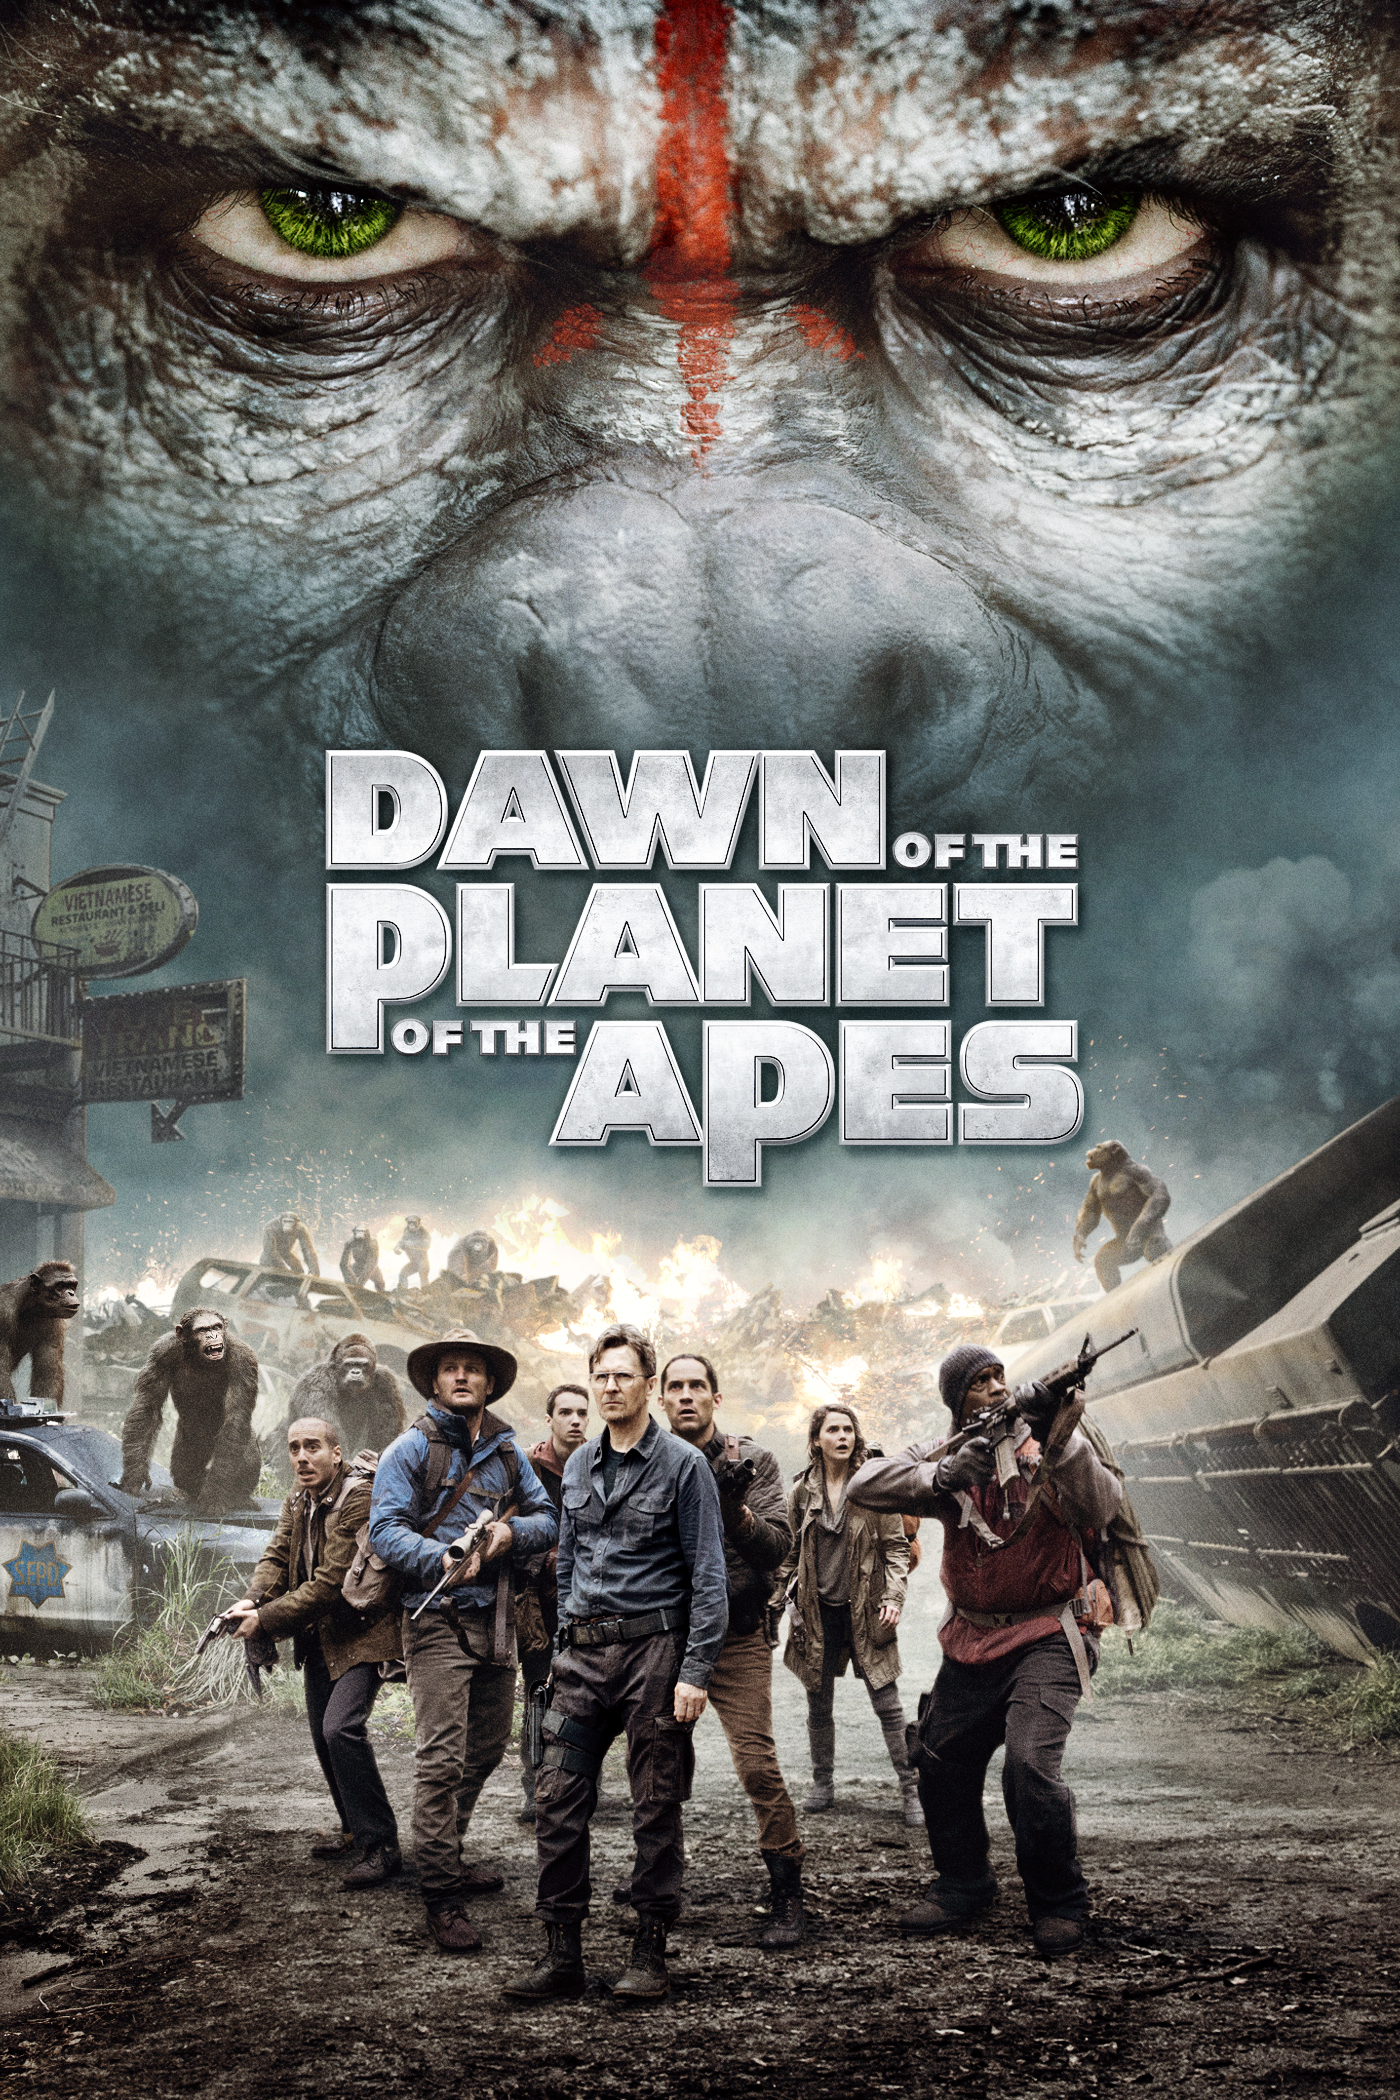 planet of the apes review 2014